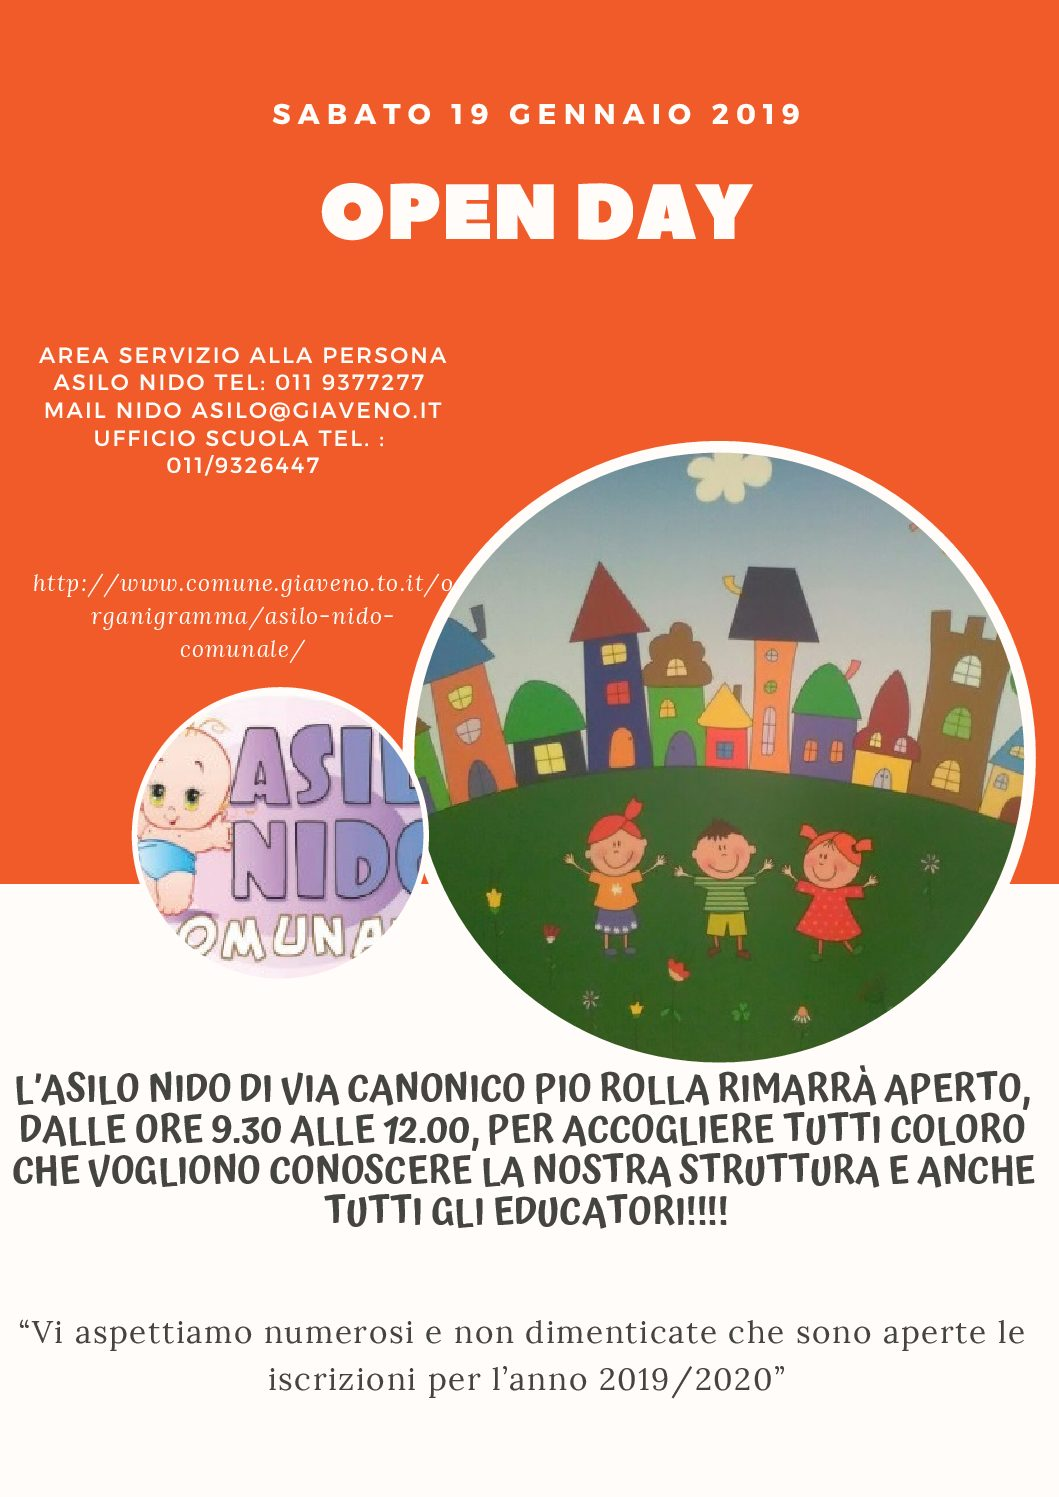 OPEN DAY ASILO NIDO CAN. PIO ROLLA